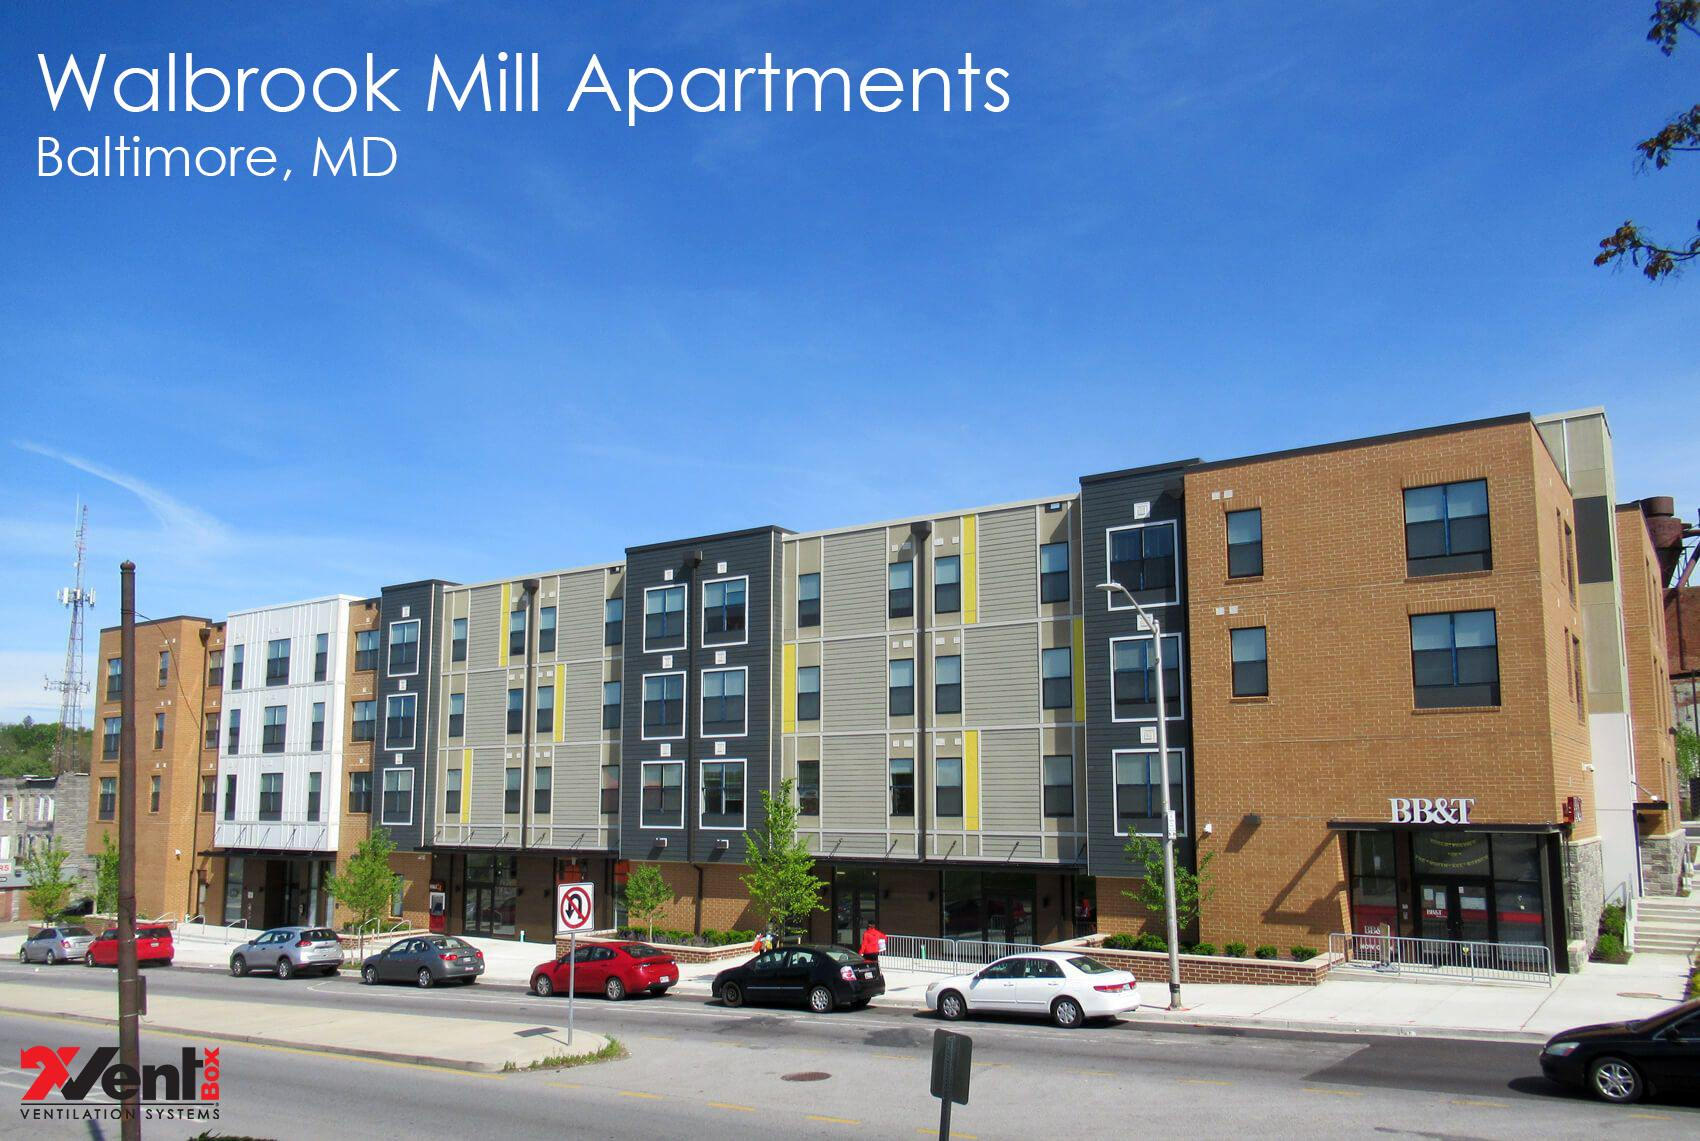 Walbrook Mill Apartments